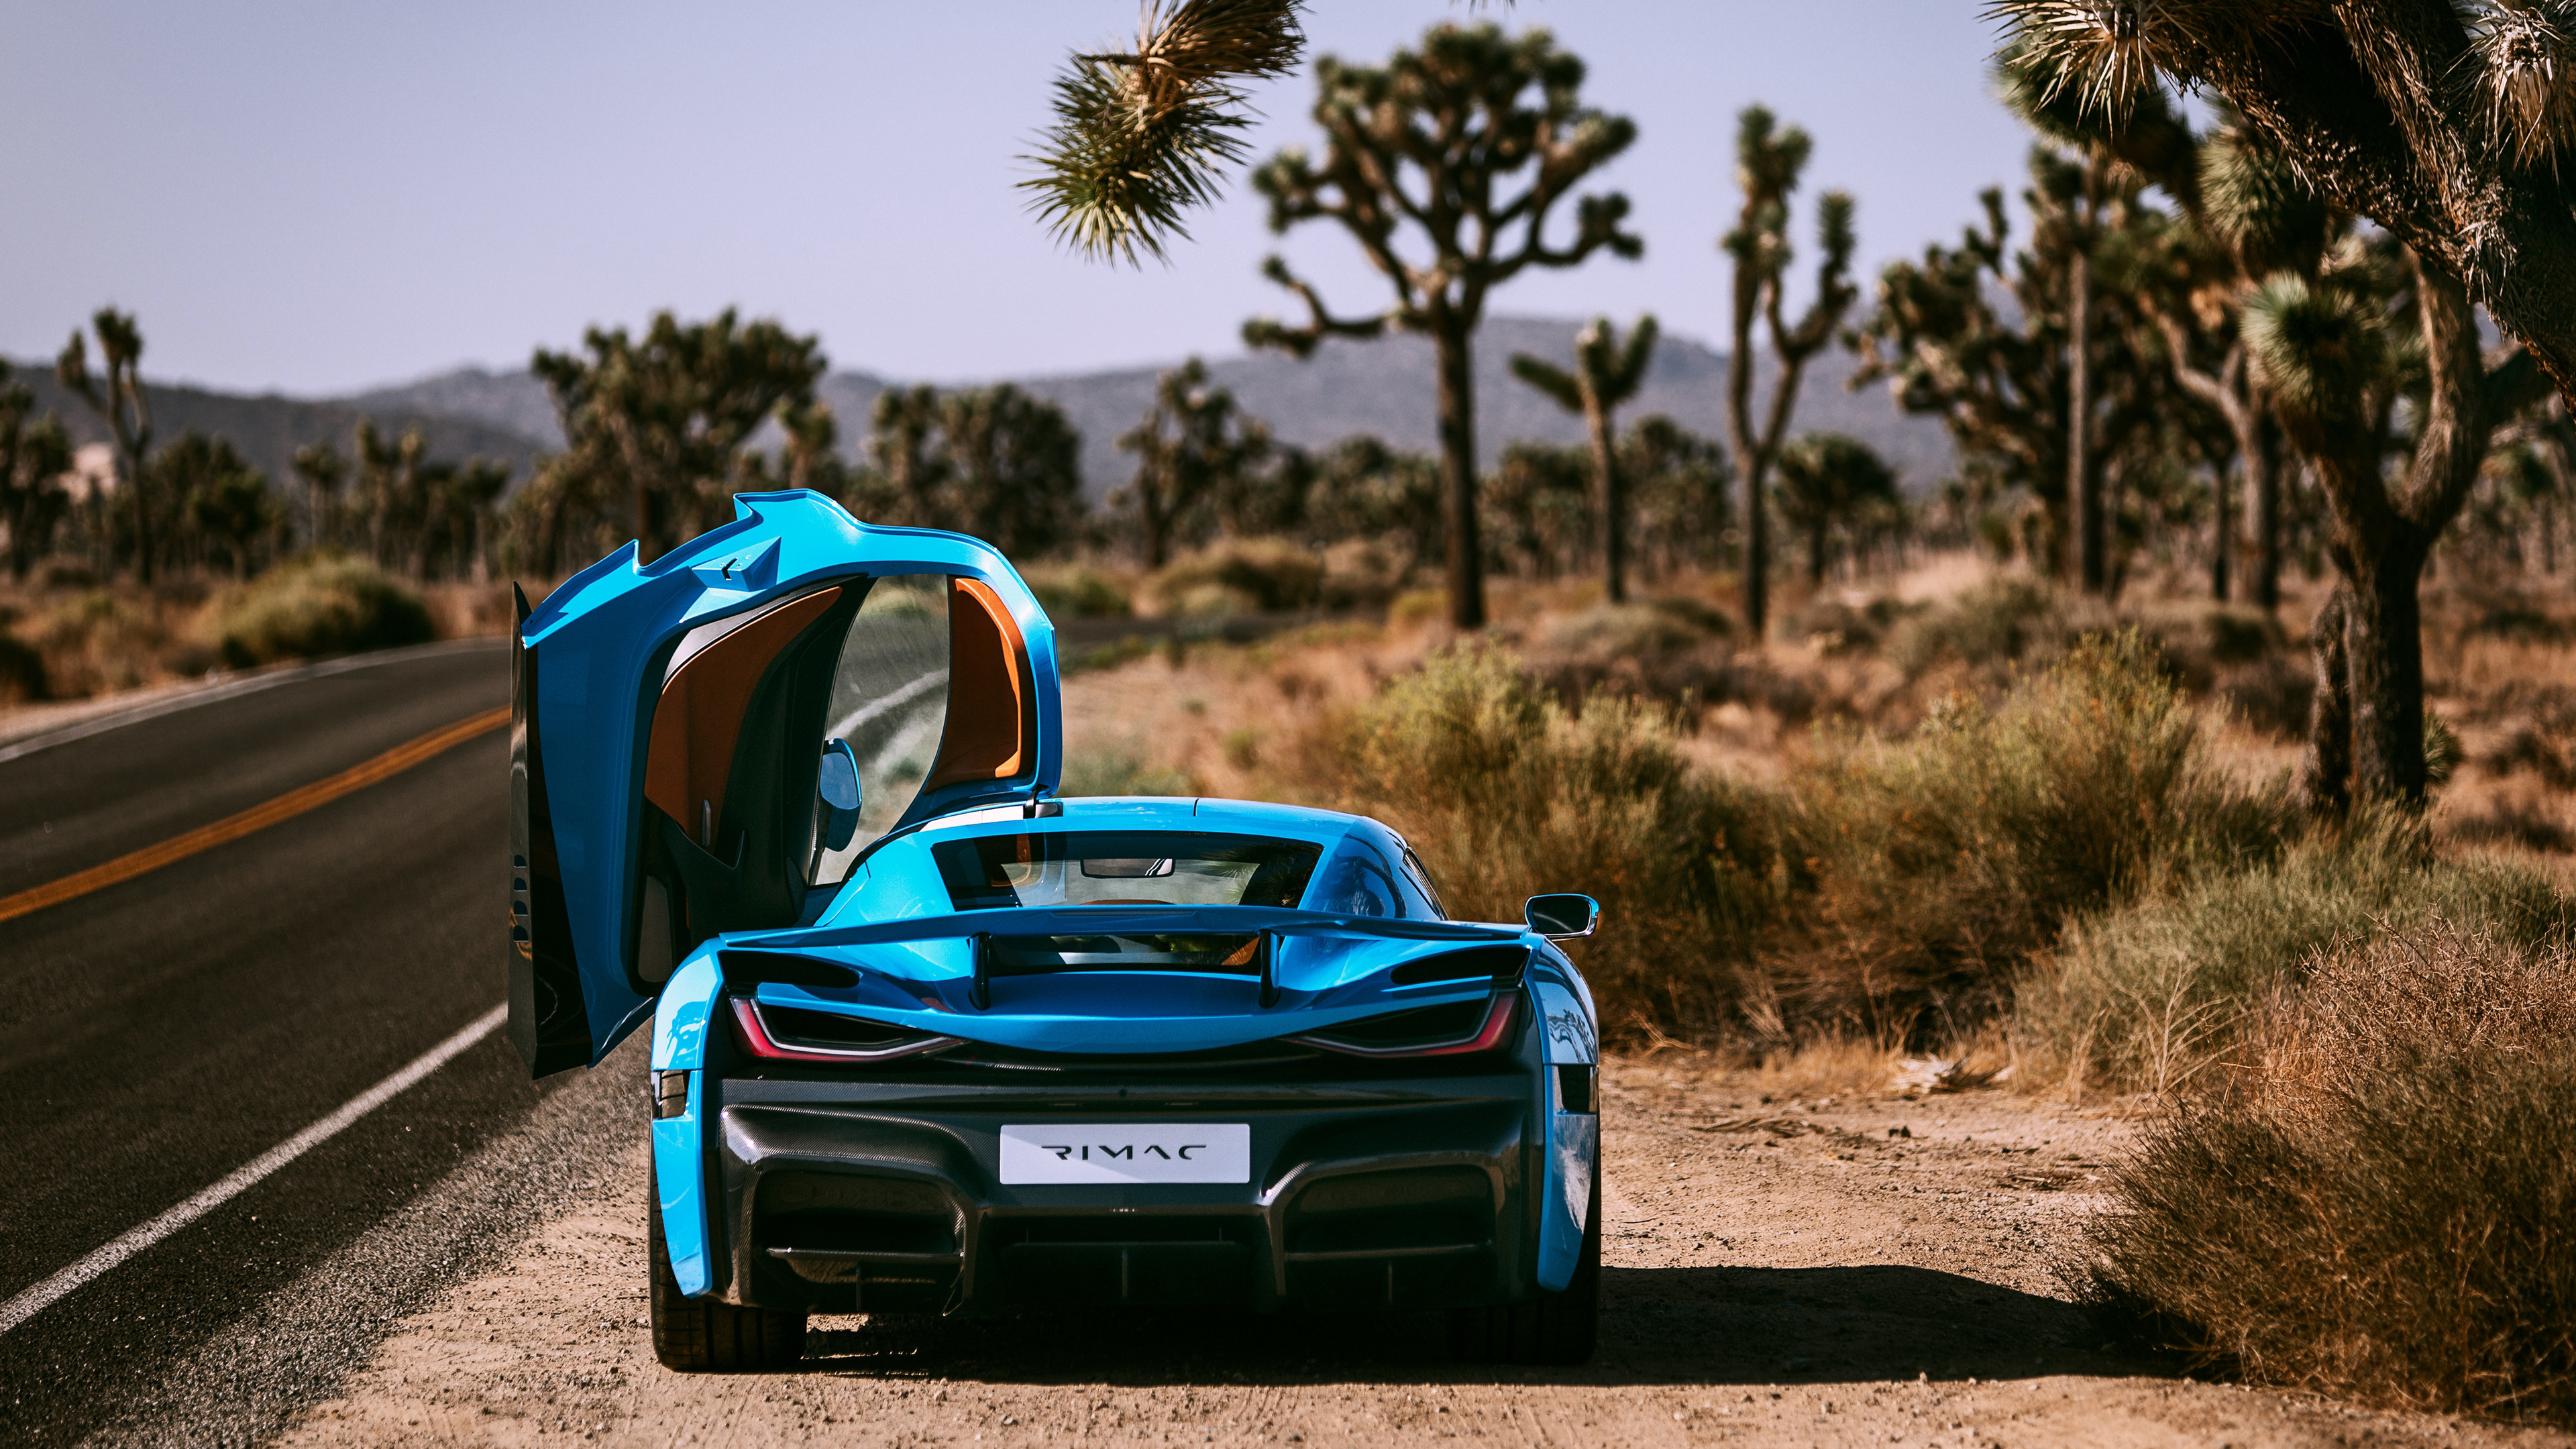 rimac c two california edition 2018 rear view 1539113896 - Rimac C Two California Edition 2018 Rear View - rimac wallpapers, rimac c two wallpapers, hd-wallpapers, cars wallpapers, 4k-wallpapers, 2018 cars wallpapers